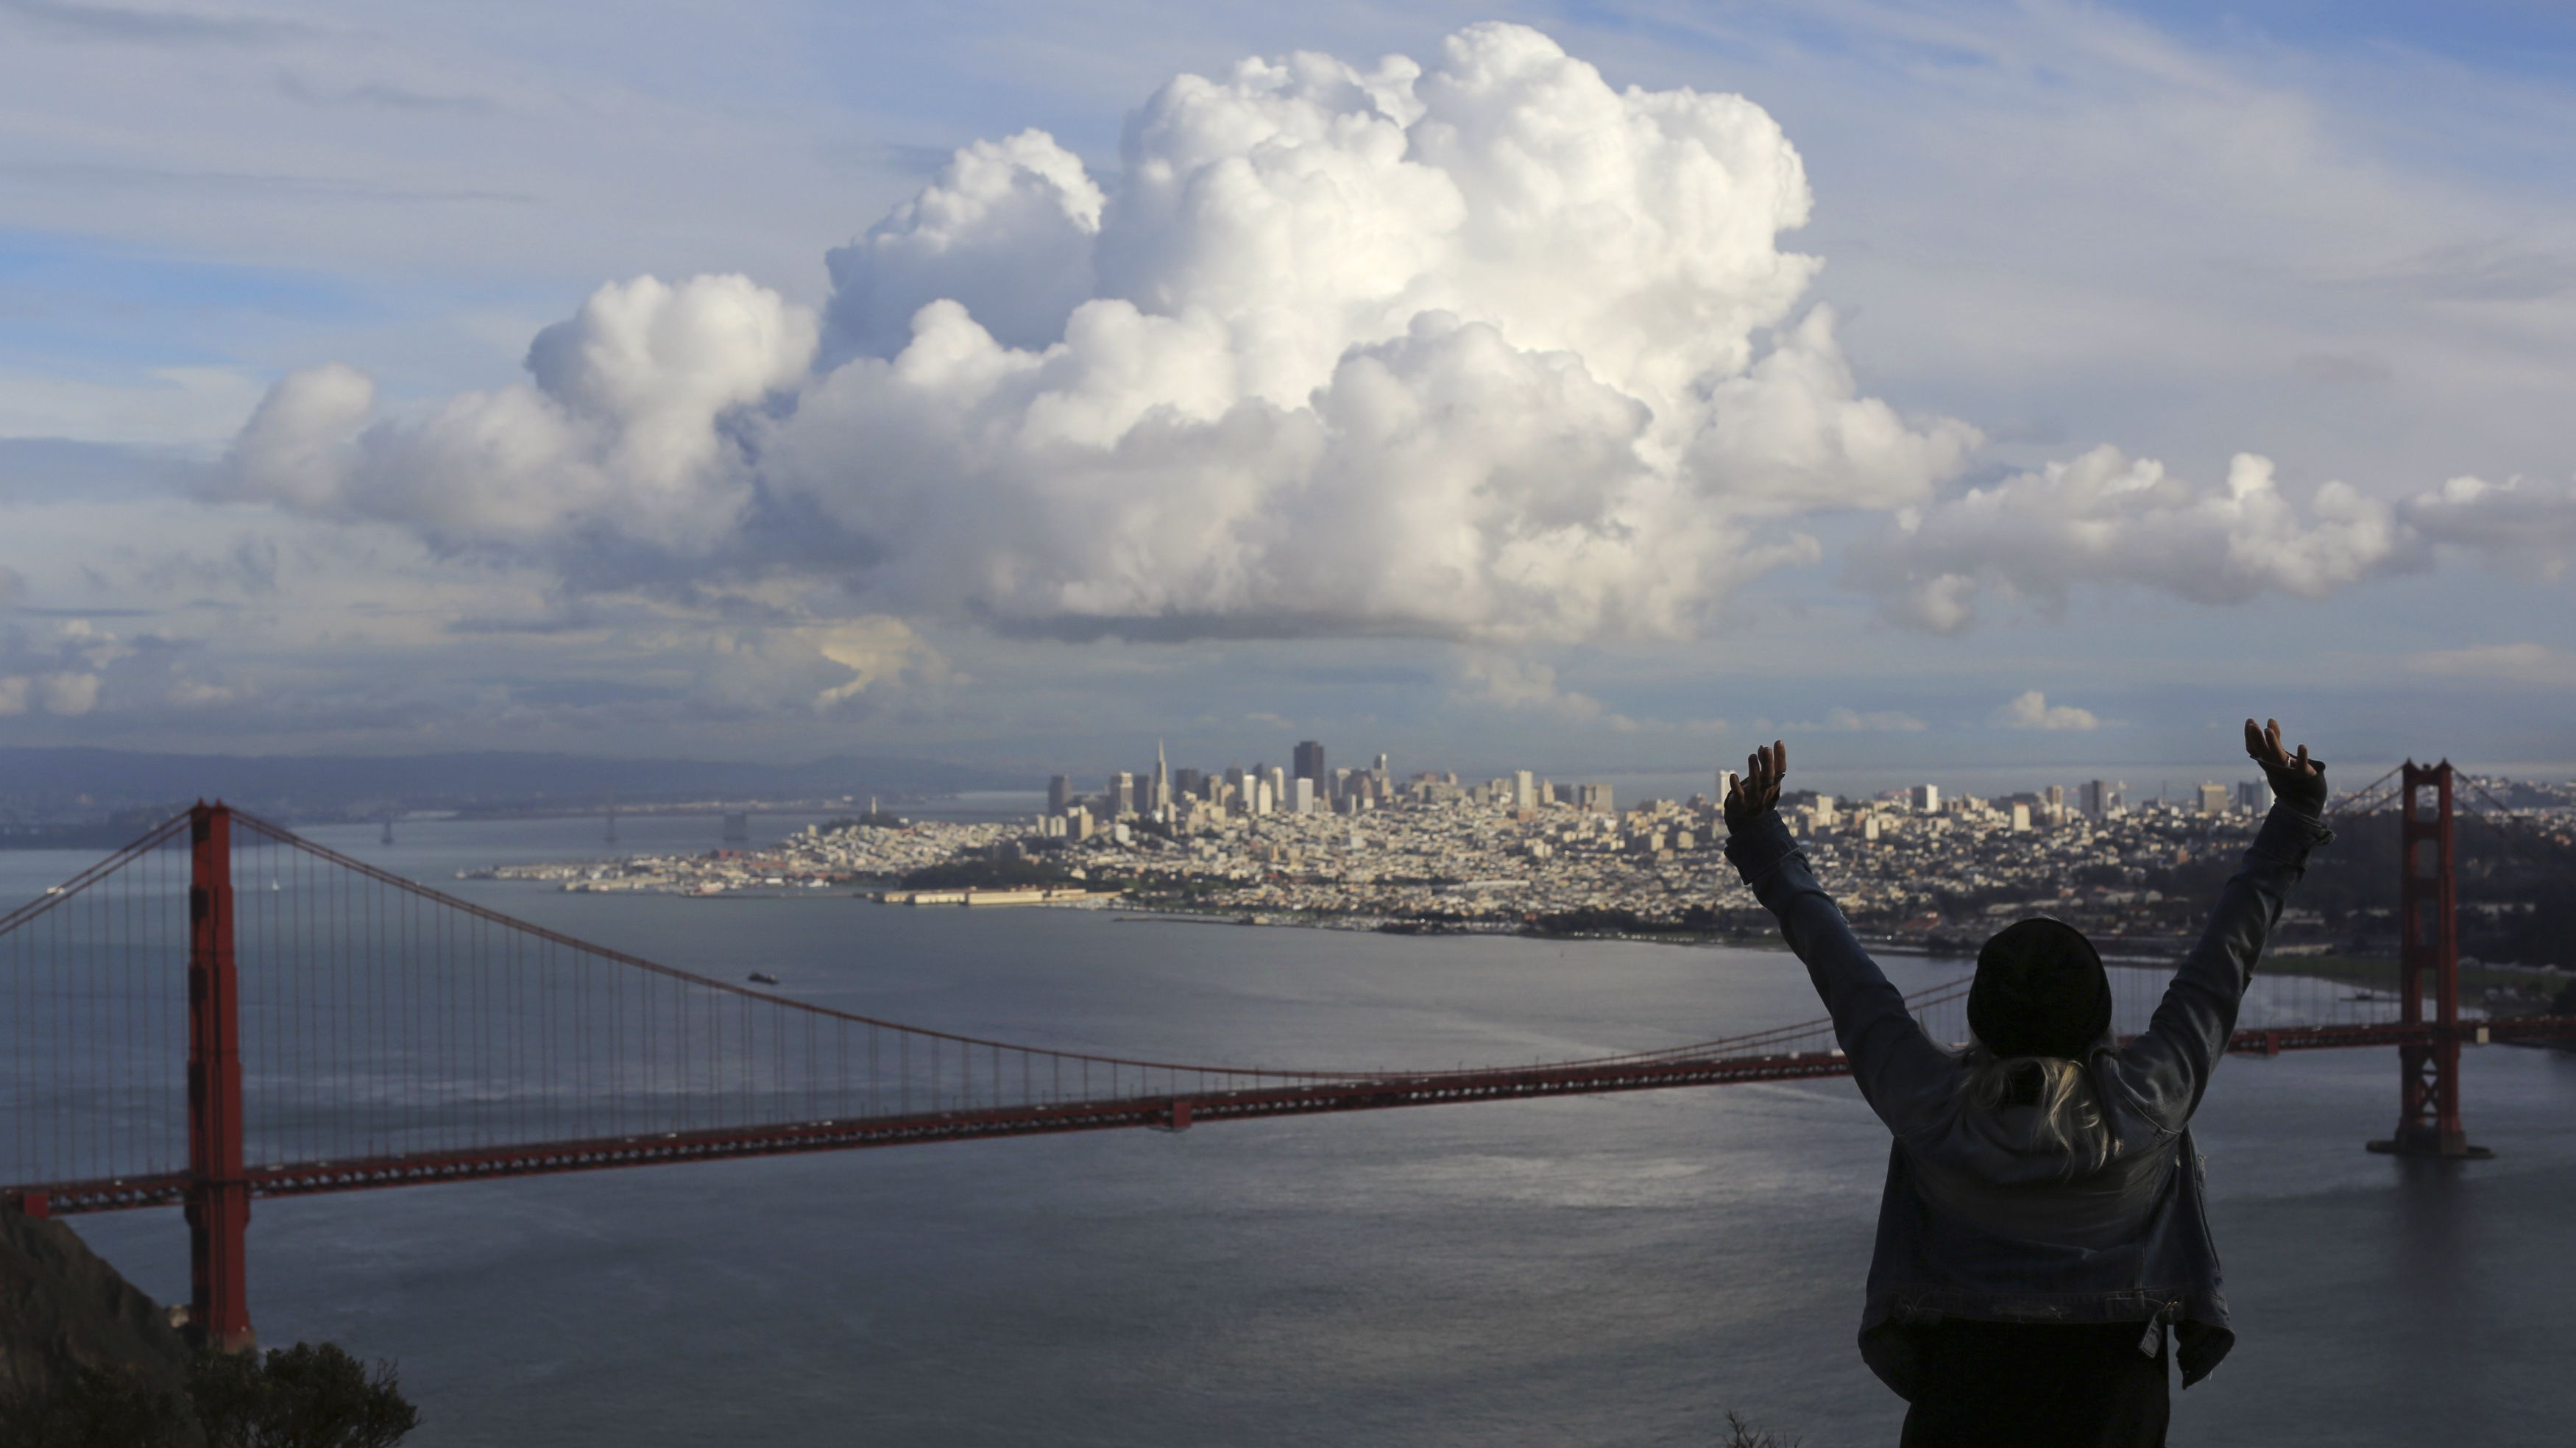 A visitor to the Marin Headlands reacts while looking out over the Golden Gate Bridge and skyline of San Francisco, as a large cloud gathers over the city, December 12, 2014. A major storm pummeled California and the Pacific Northwest with heavy rain and high winds on Thursday, killing one man, knocking out power to tens of thousands of homes, disrupting flights and prompting schools to close. REUTERS/Robert Galbraith (UNITED STATES - Tags: ENVIRONMENT TRAVEL CITYSCAPE) - RTR4HU44